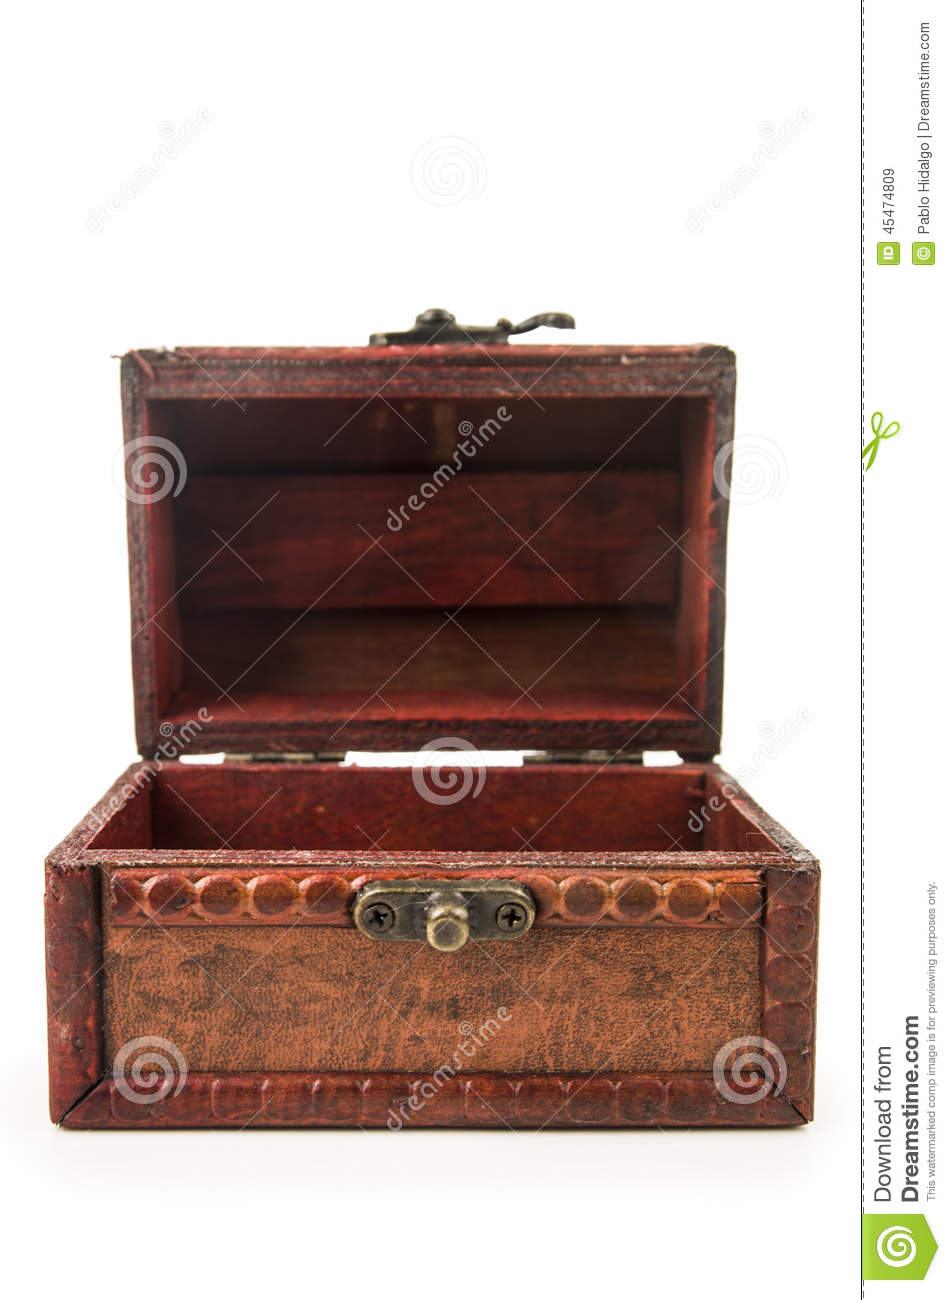 Treasure Toys Cartoon : Ancient wooden treasure chest full of coins royalty free